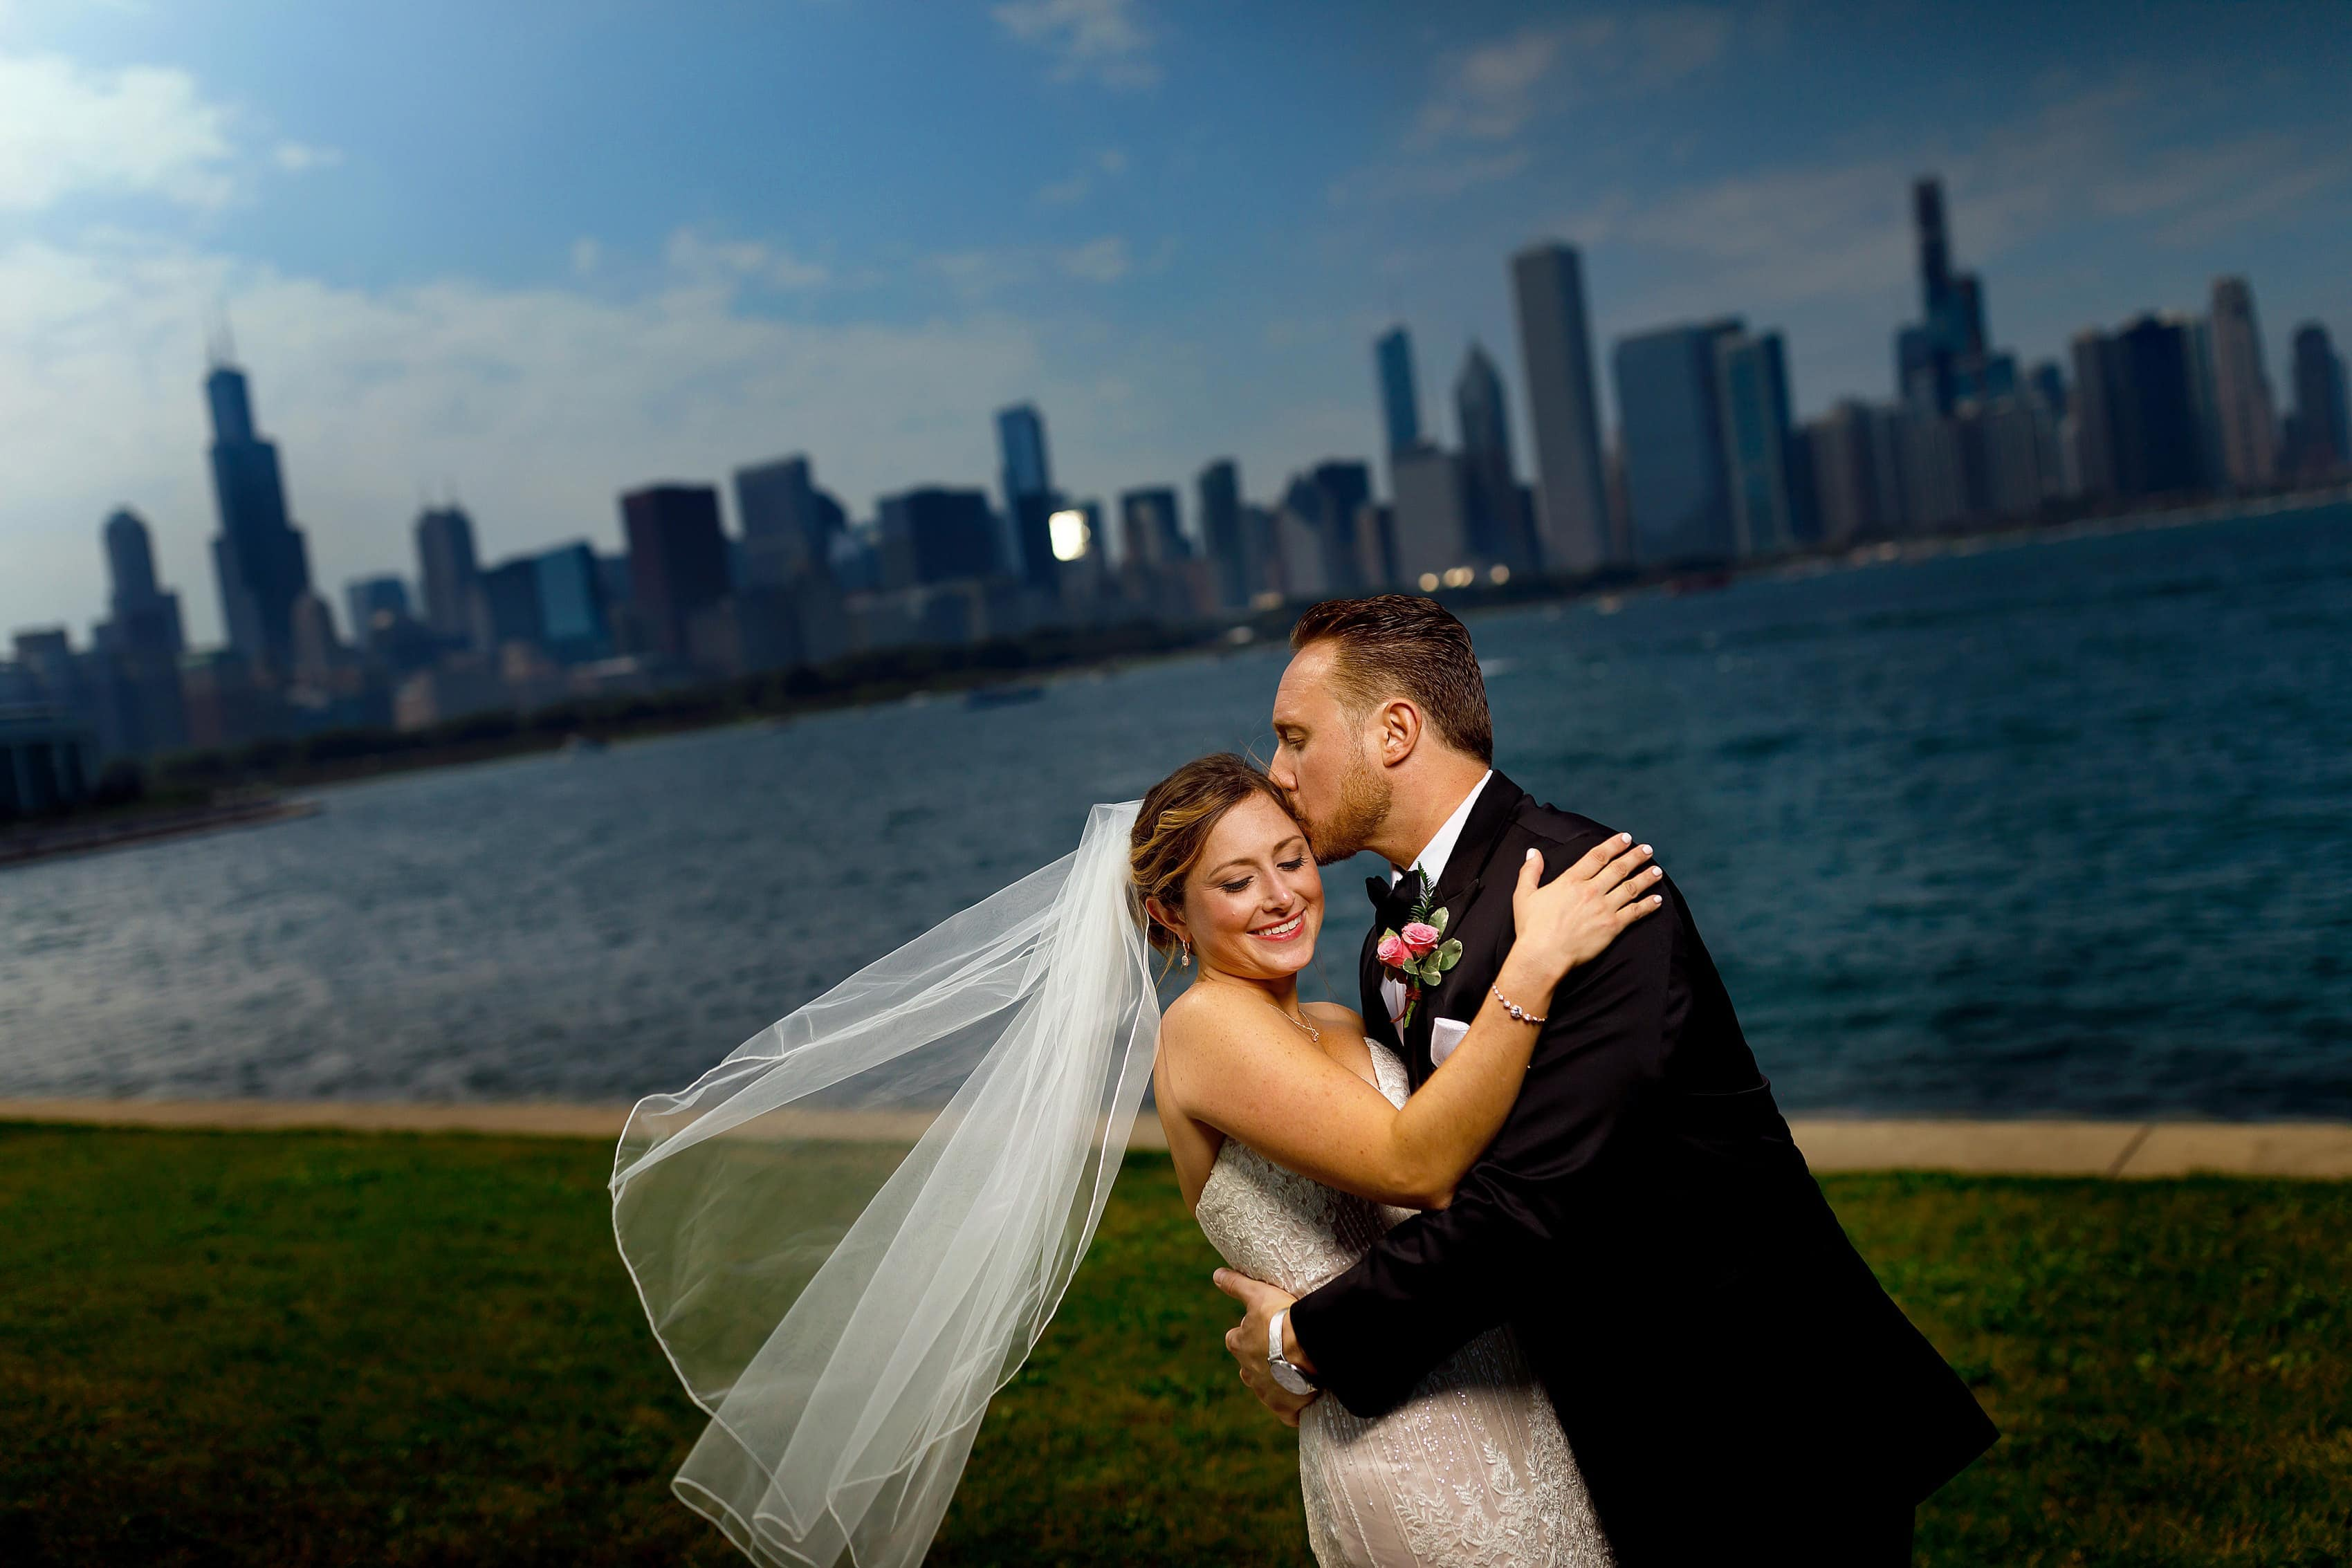 bride and groom wedding portrait with full Chicago Skyline in the background from Adler Planetarium and Museum campus